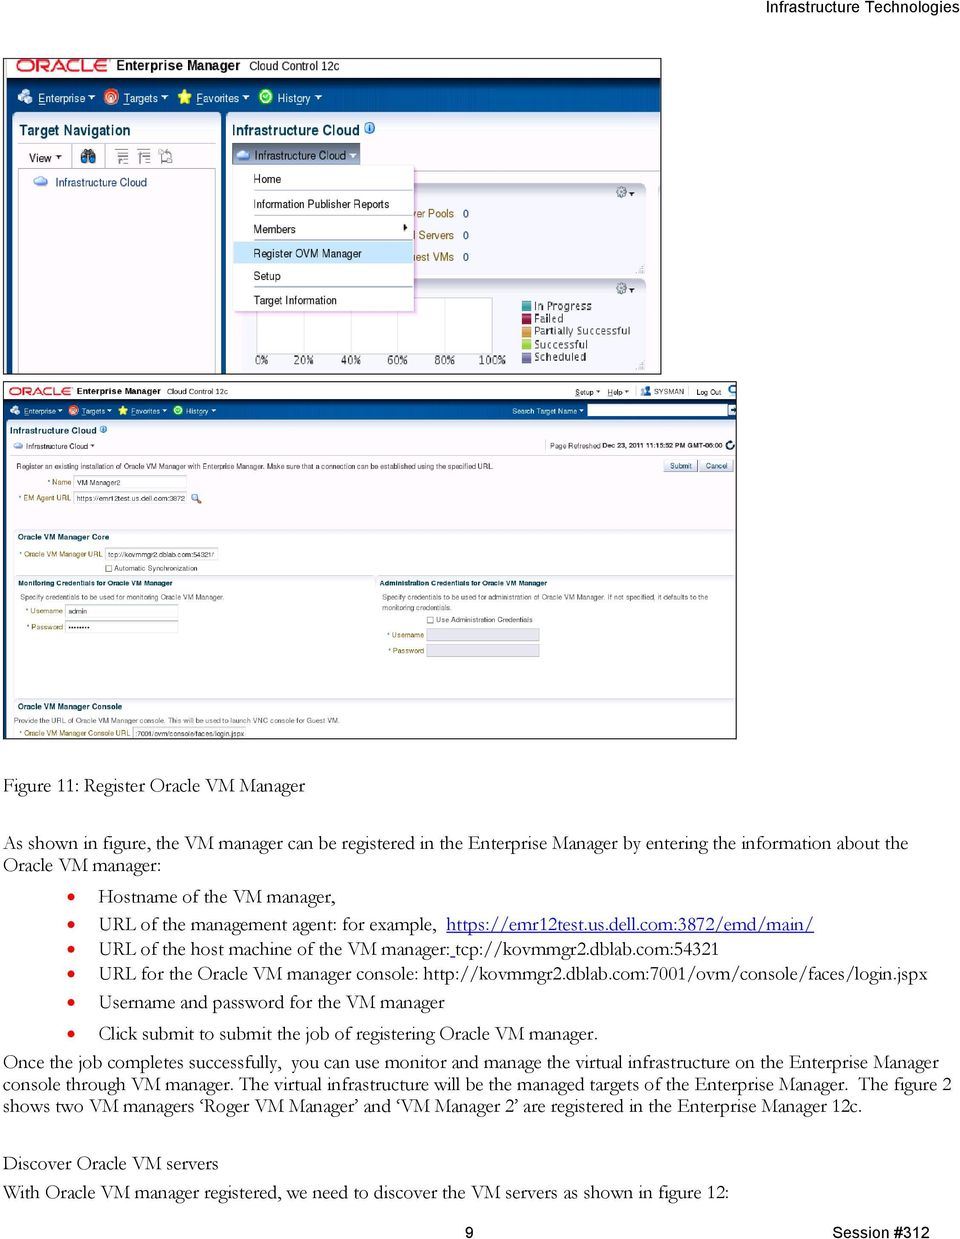 com:54321 URL for the Oracle VM manager console: http://kovmmgr2.dblab.com:7001/ovm/console/faces/login.